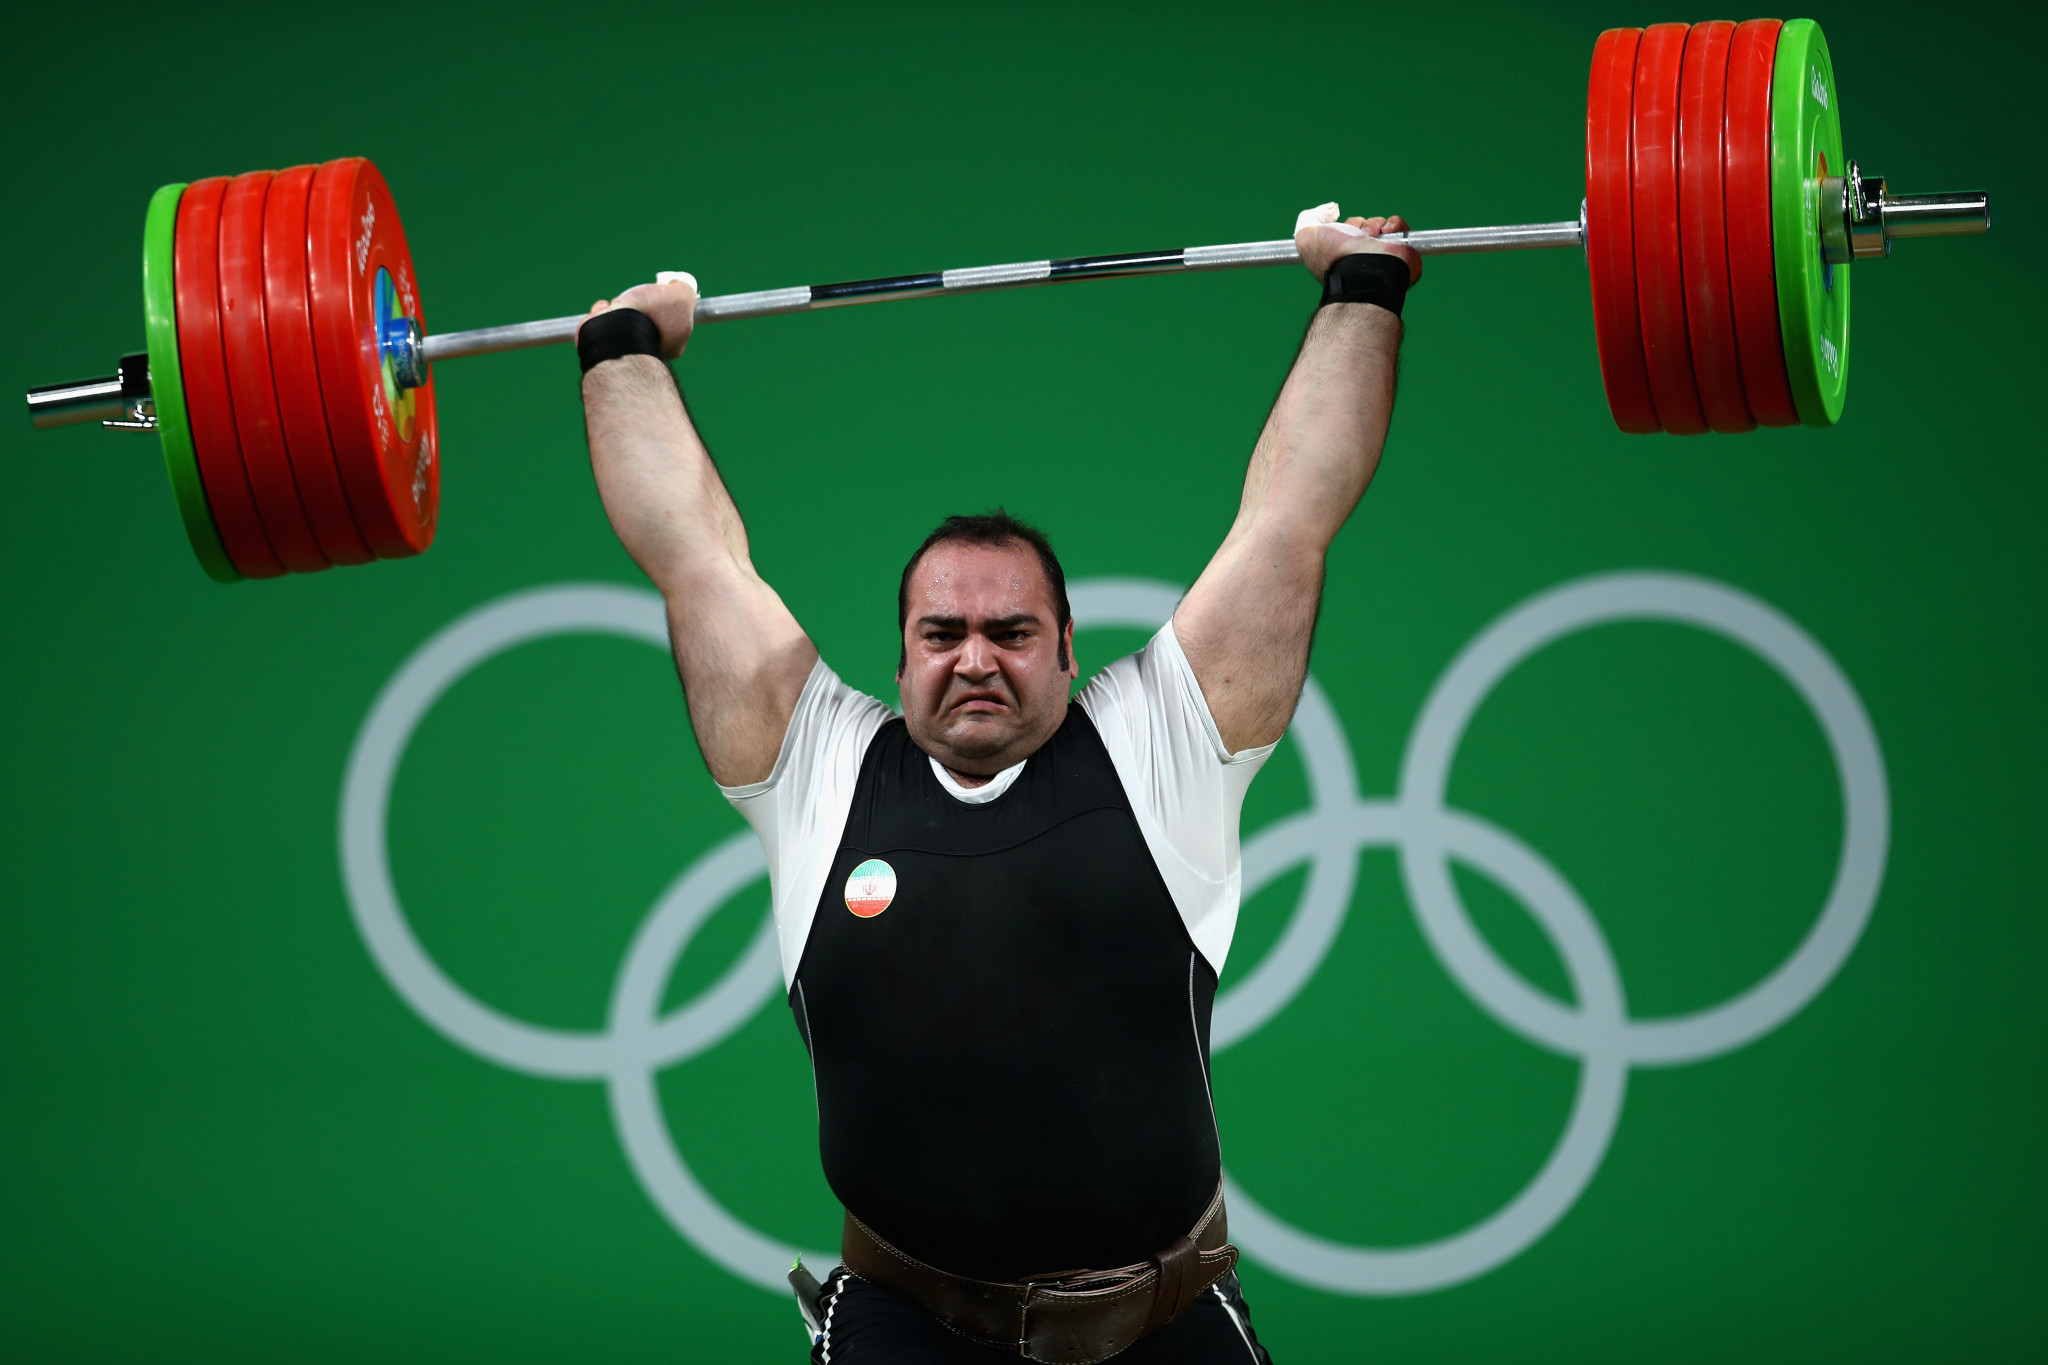 Weightlifting has been one of Iran's most successful Olympic sports ©Getty Images